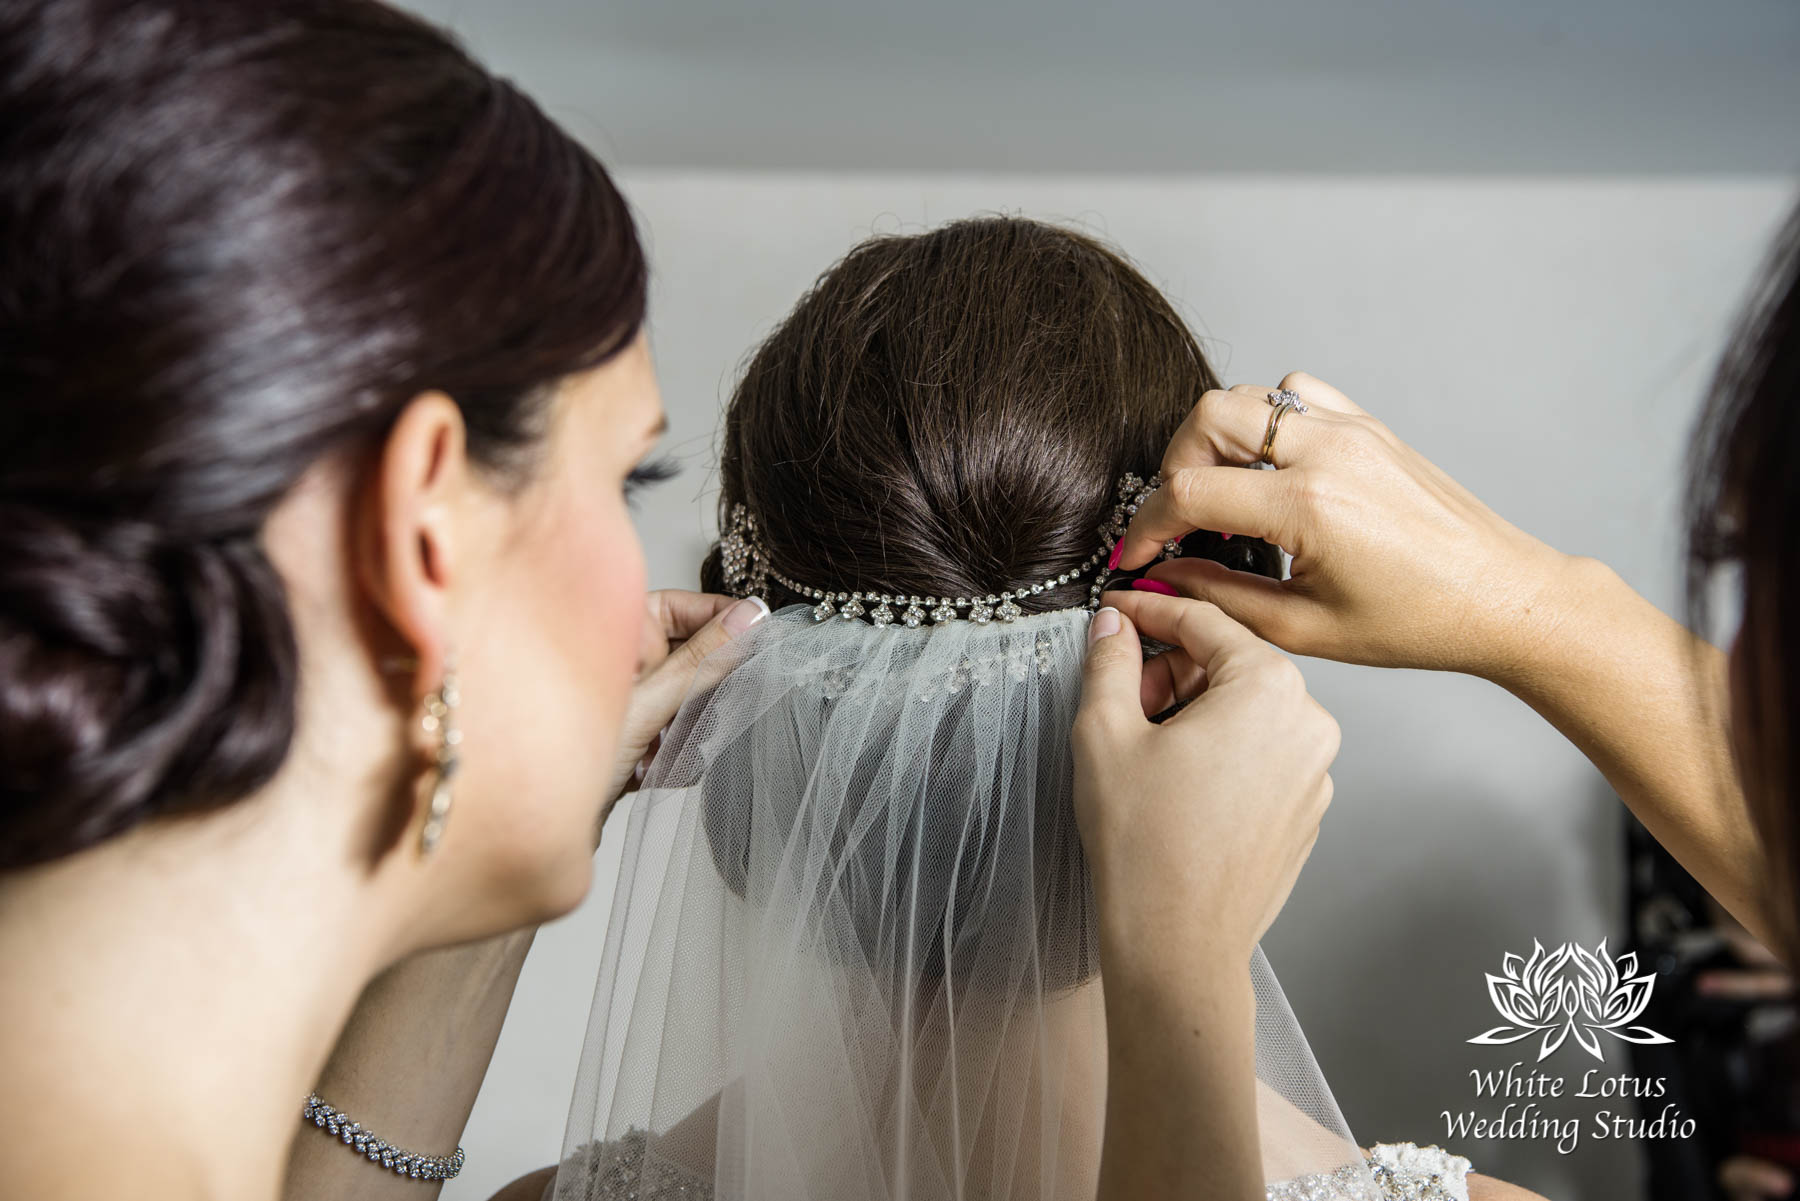 057 - Wedding - Toronto - Bride getting ready - PW